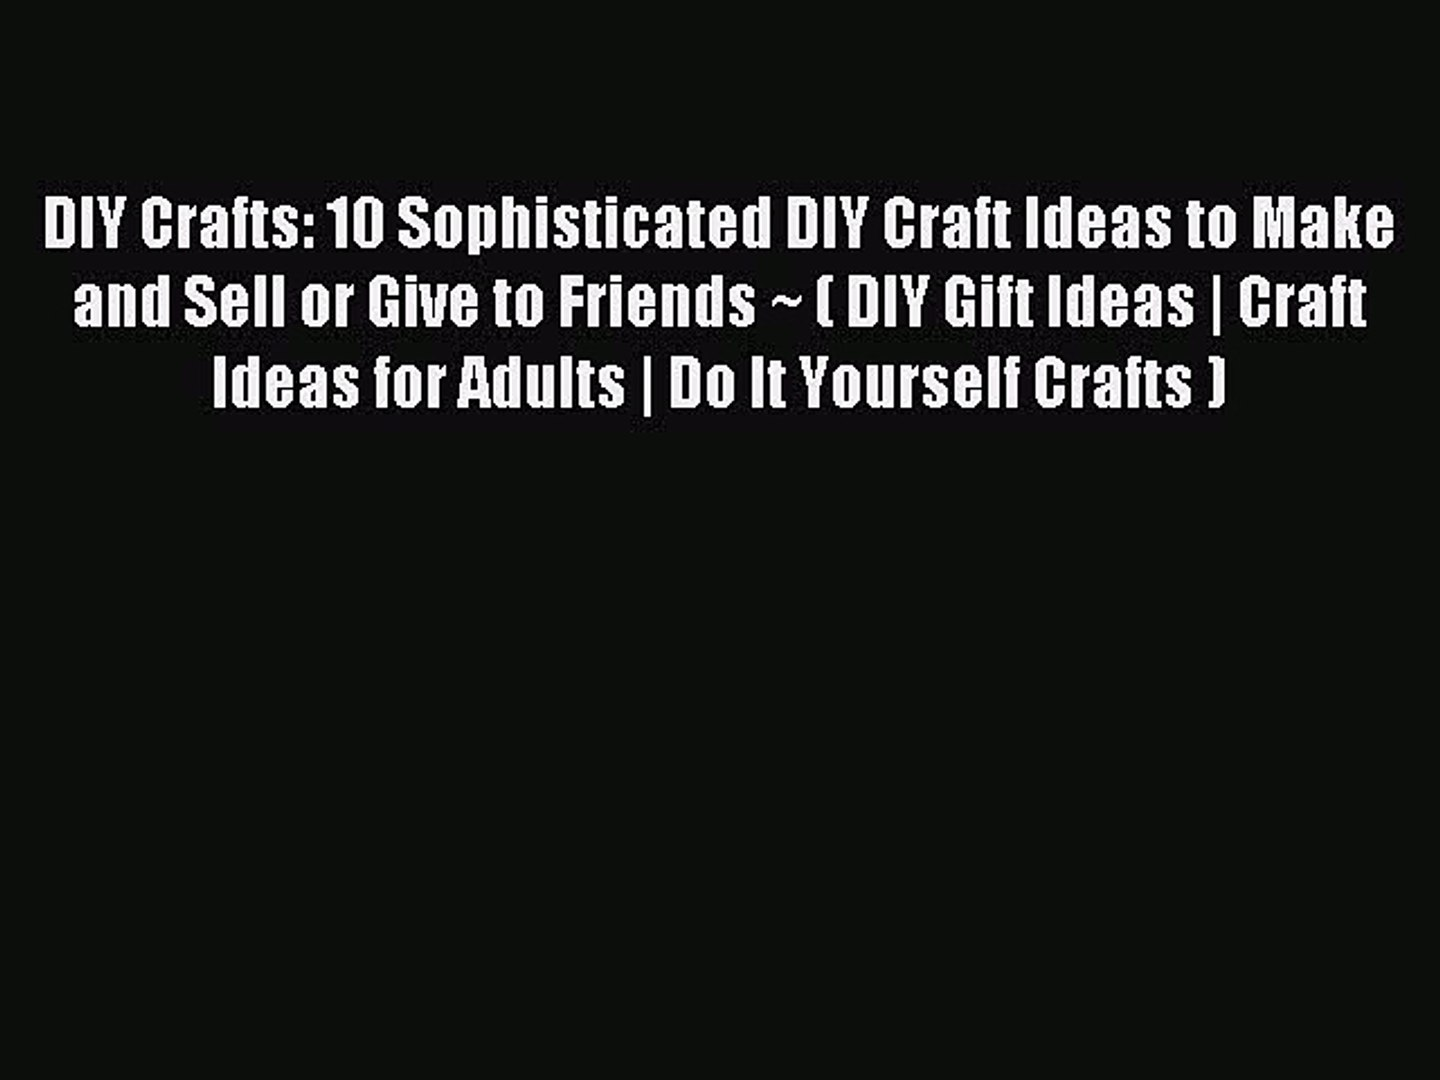 Read DIY Crafts: 10 Sophisticated DIY Craft Ideas to Make and Sell or Give to Friends ~ ( DIY